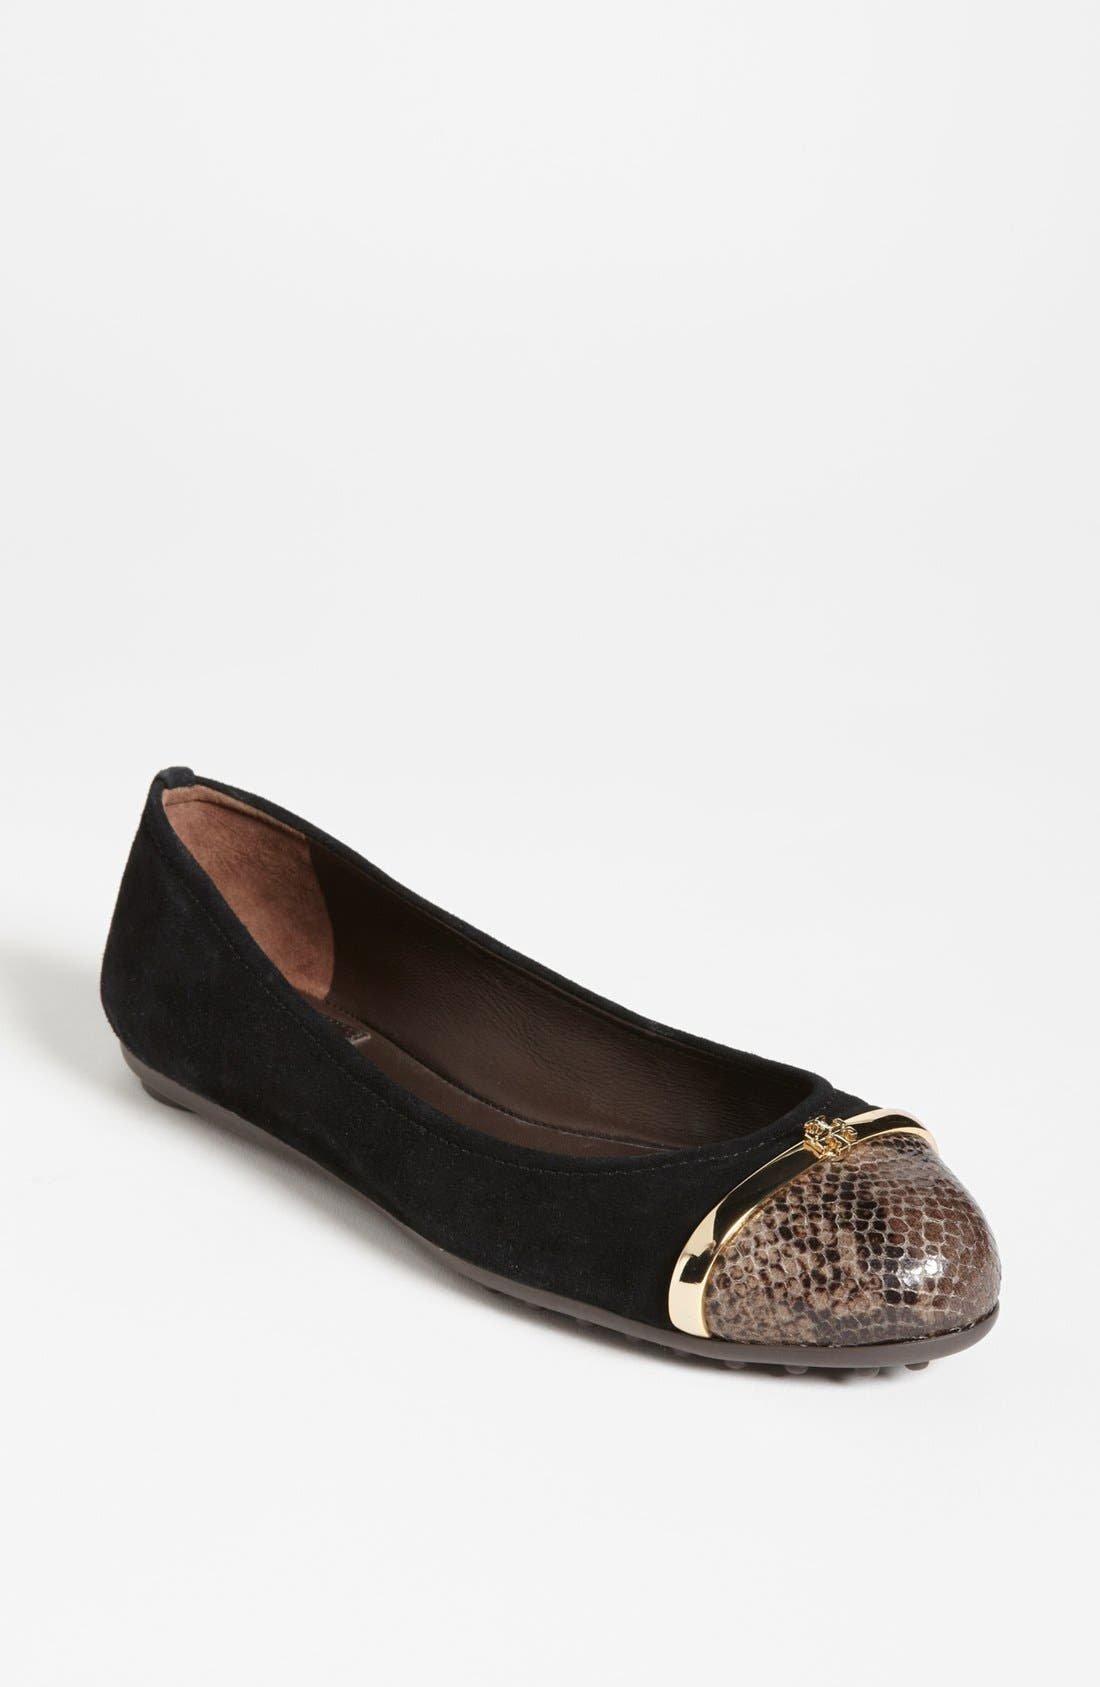 Alternate Image 1 Selected - Tory Burch 'Pacey' Skimmer Flat